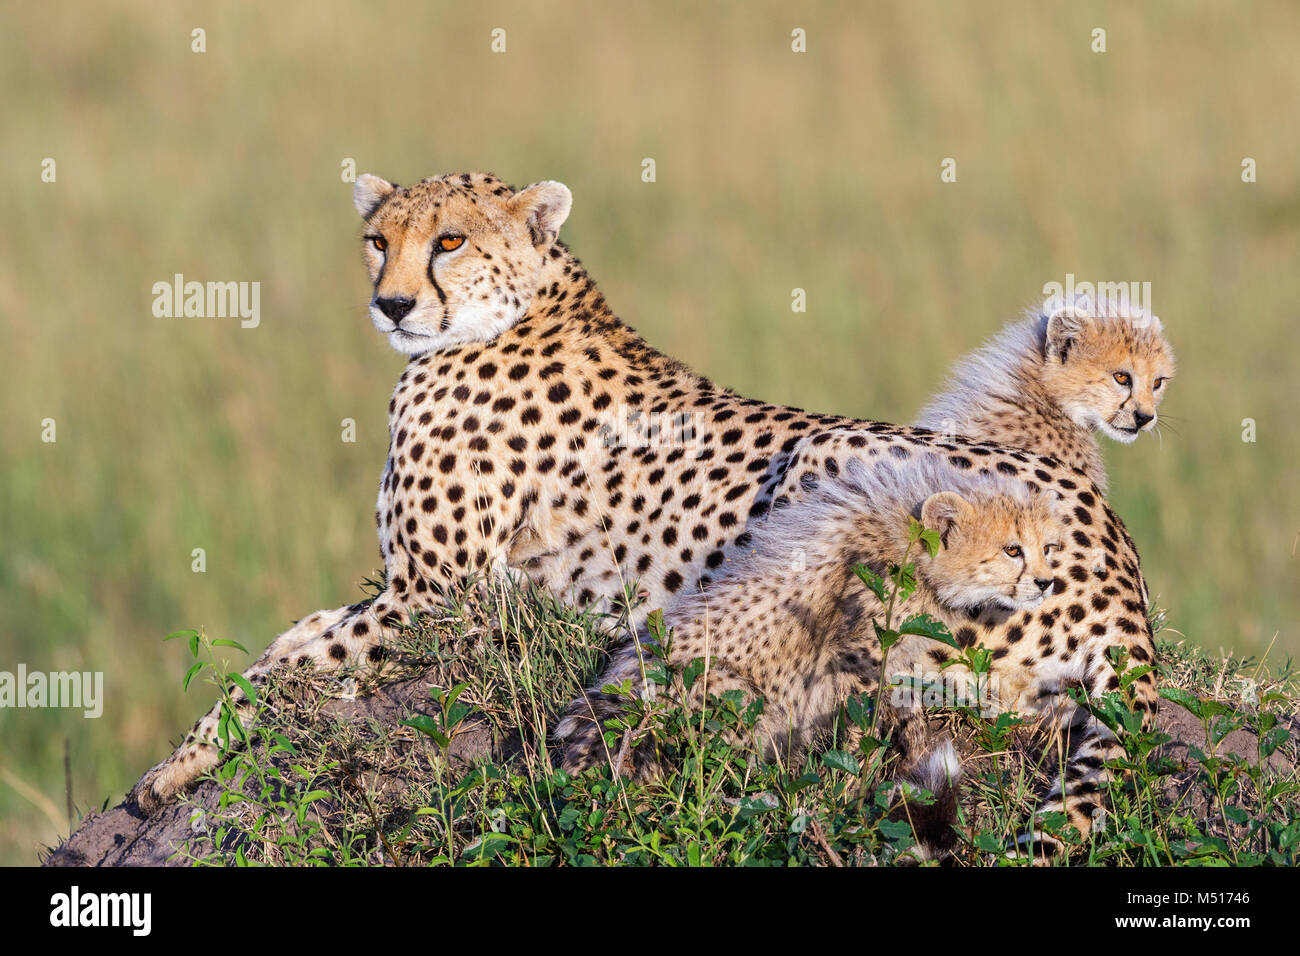 Cheetah cubs with their mother on the African savanna Stock Photo